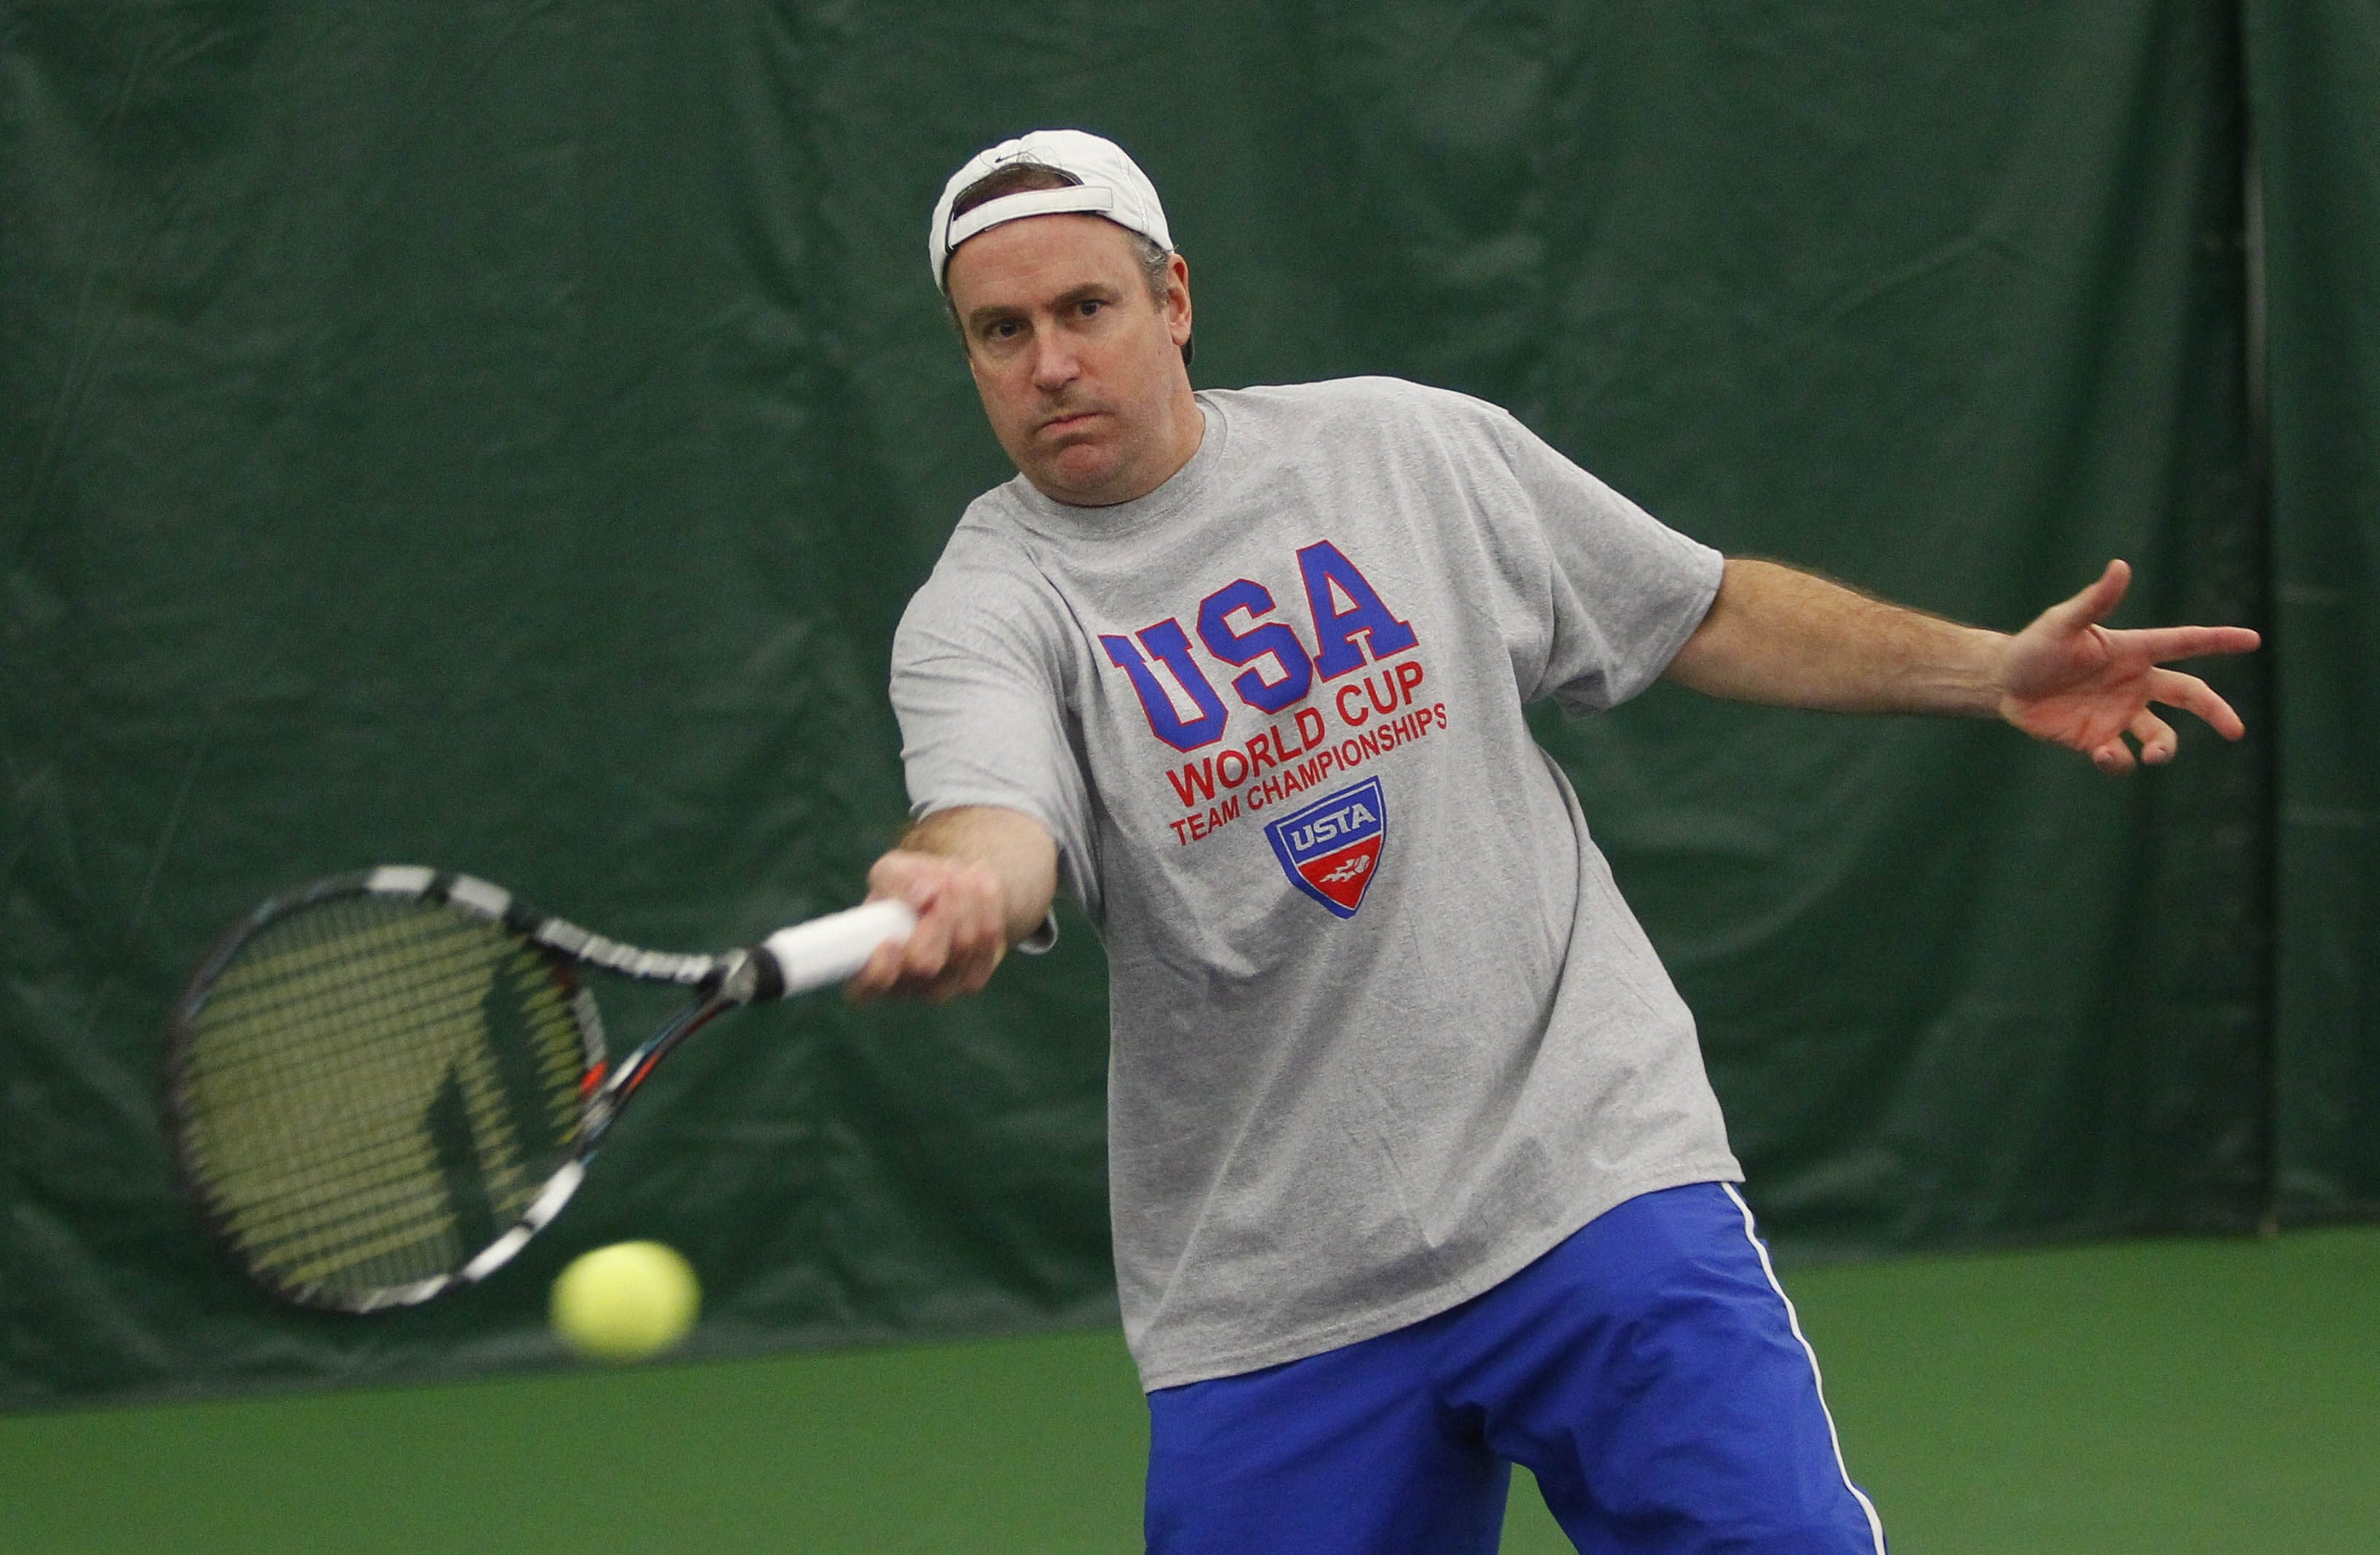 Ken White is one of 40 tennis players who will be representing the U.S. in the U.S. Senior World Championships later this month in Florida.